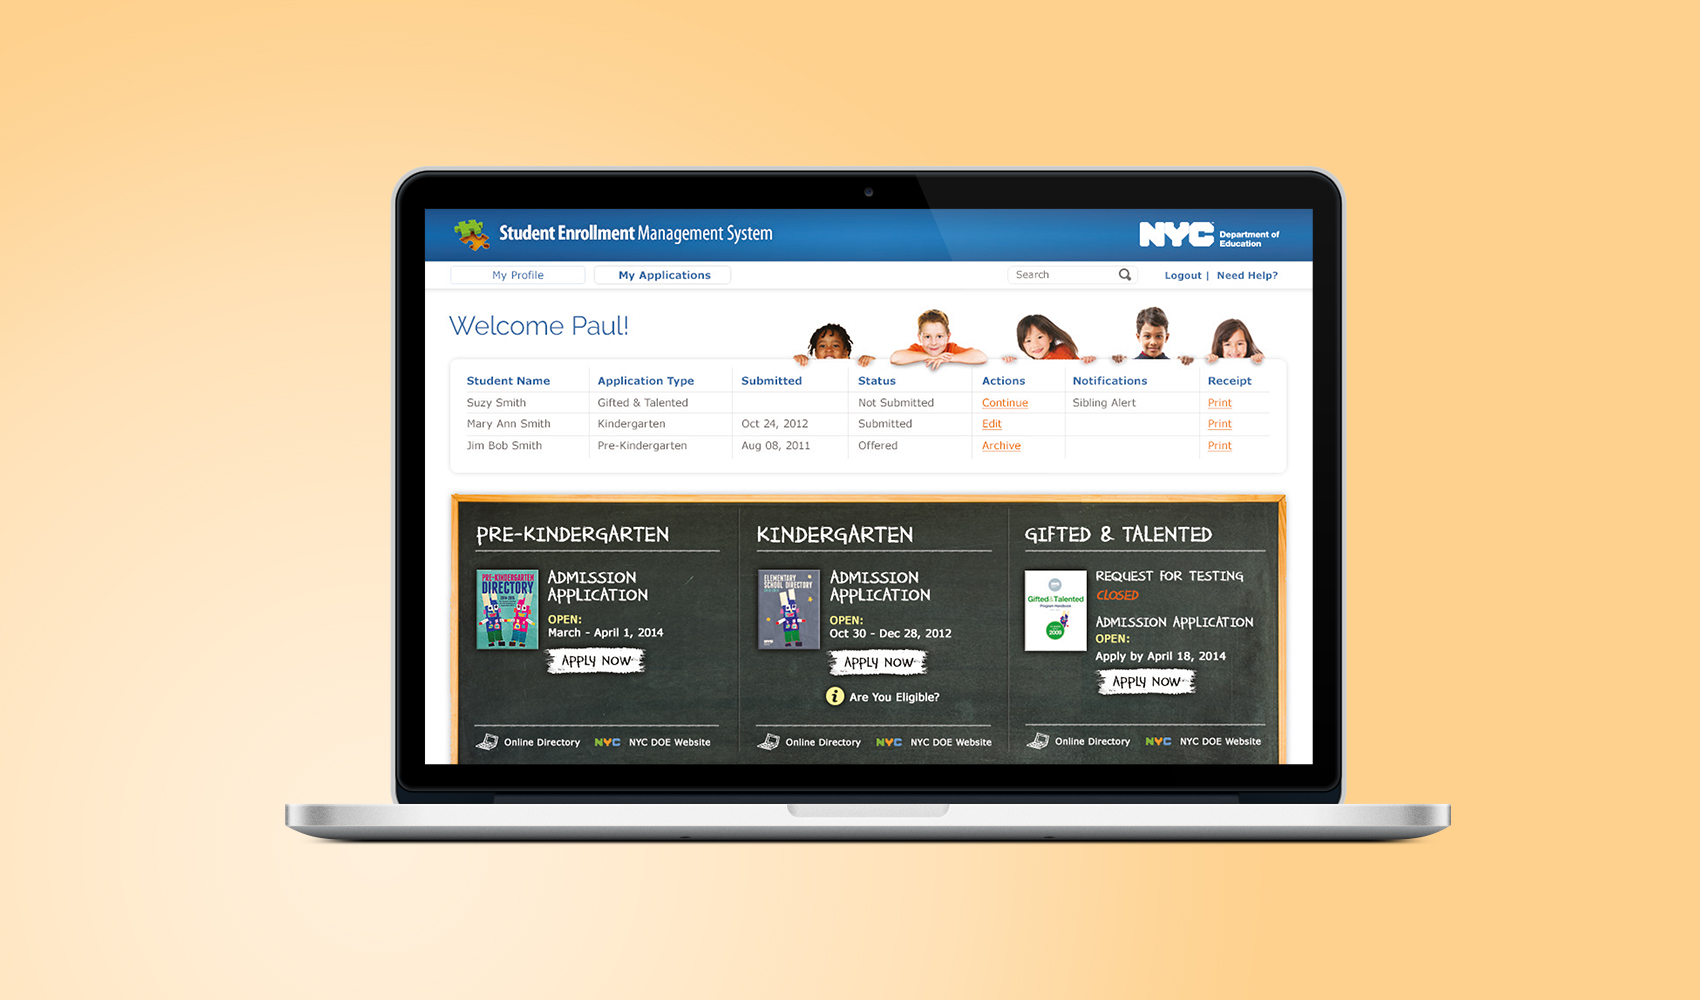 Vanguard - Online Enrollment Tool for the NYC Department of Education